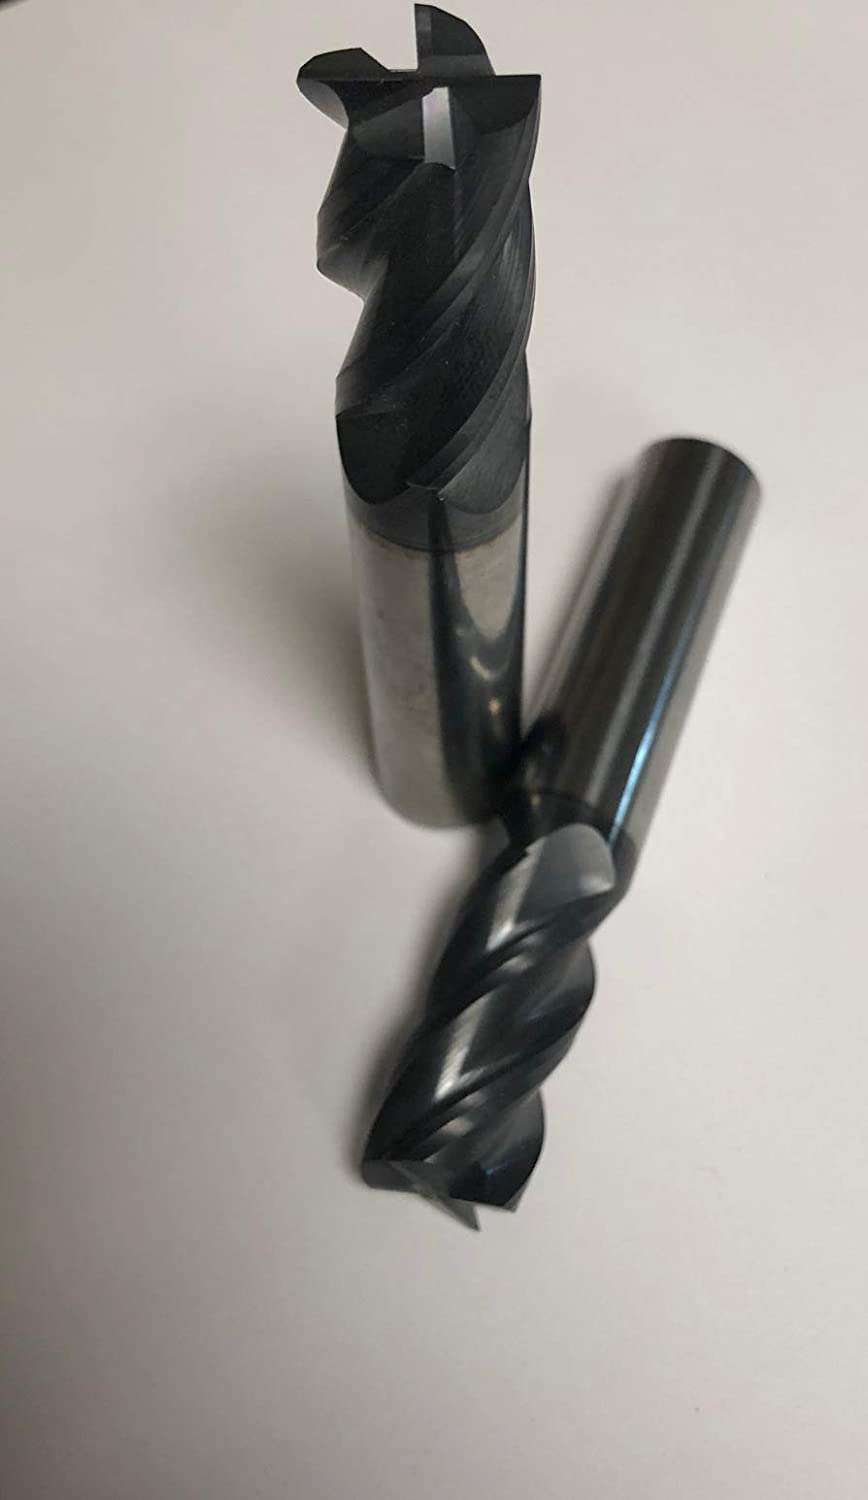 4 Flute,1//4 Dia. Solid Carbide Square End Mill Tialn-Coated